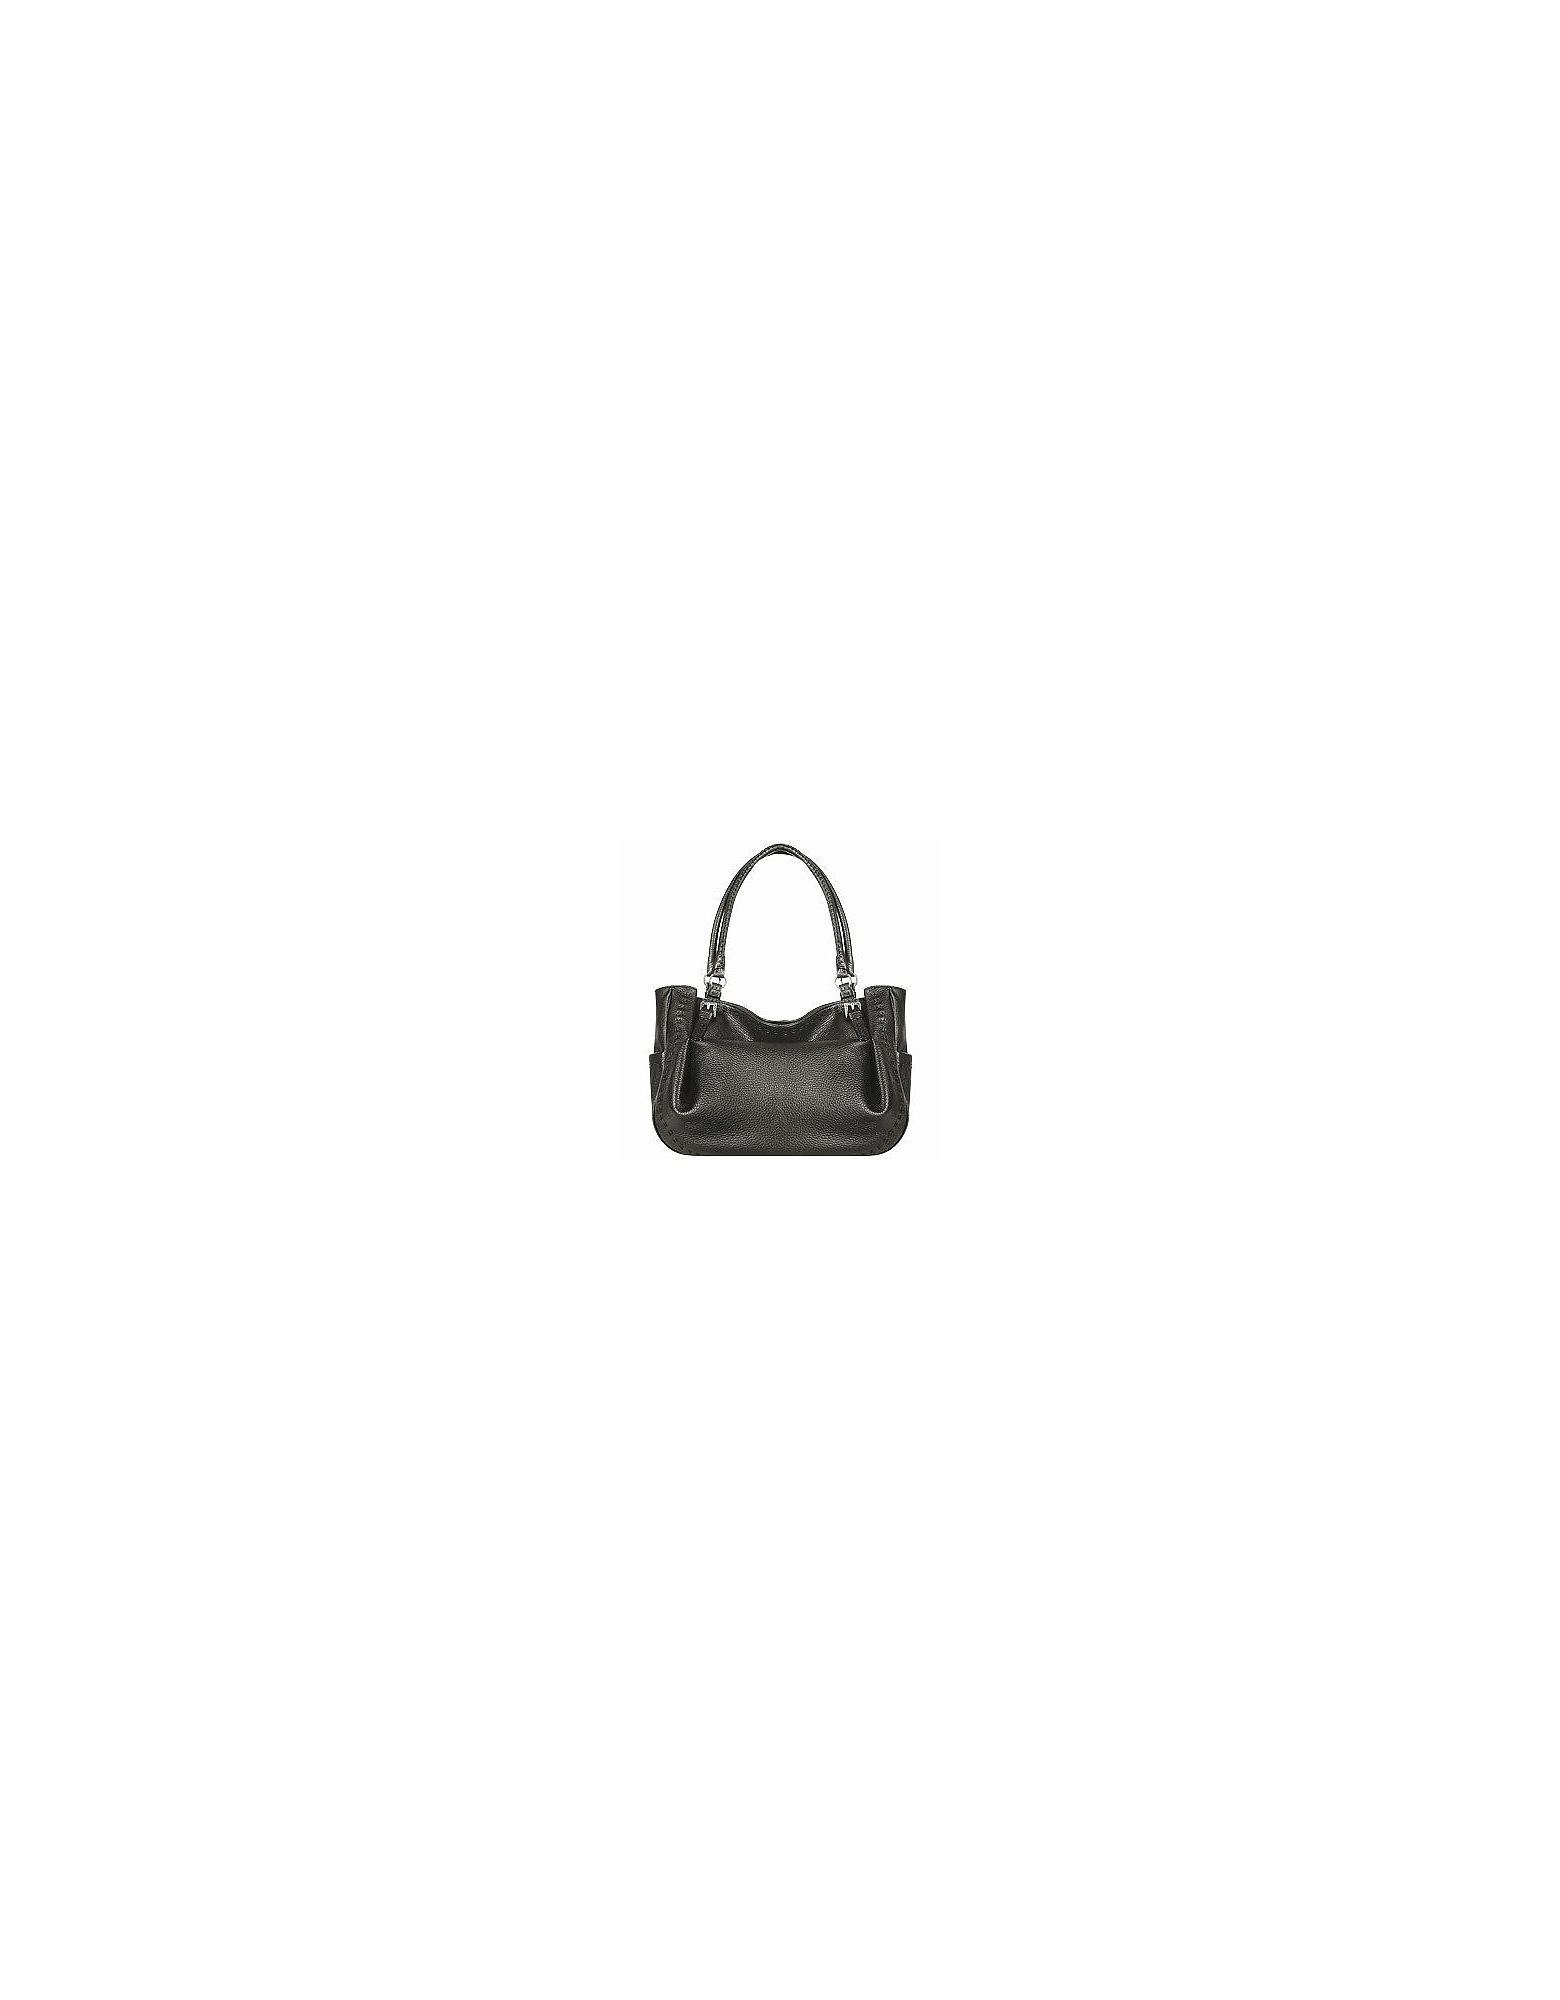 Fontanelli Handbags, Black Stitched Soft Leather Tote